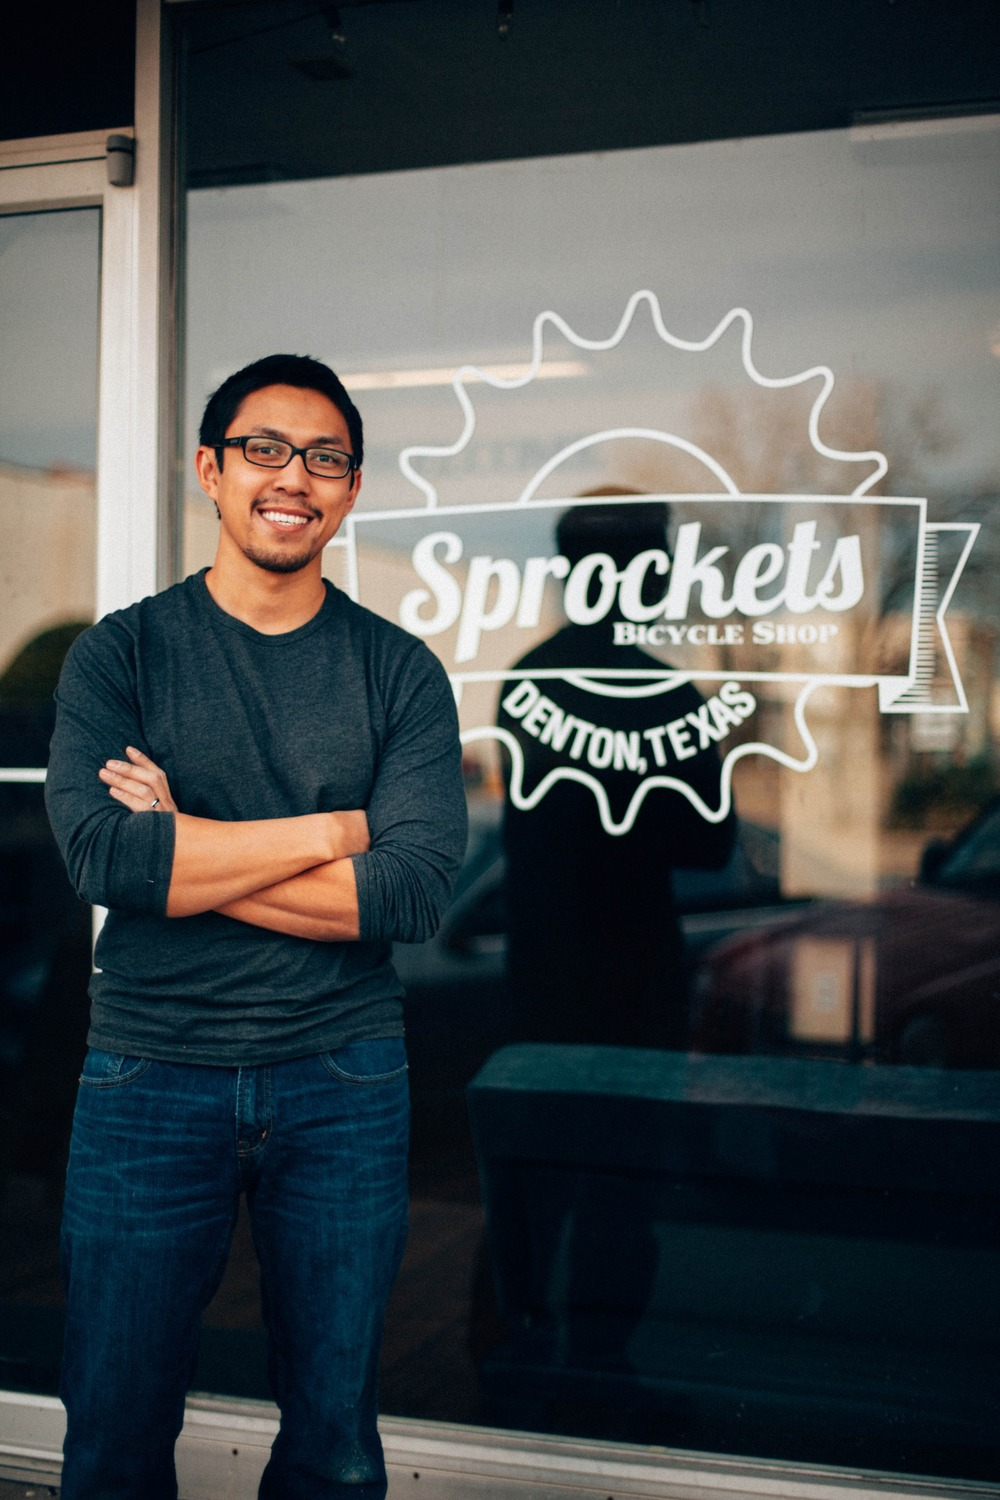 Sipo - Founder - 10 years in the bike industry.  Specializes in carbon repairs and painting.  Started Sprockets from his college apartment and grew the business to a 3000sqft retail location in downtown Denton.